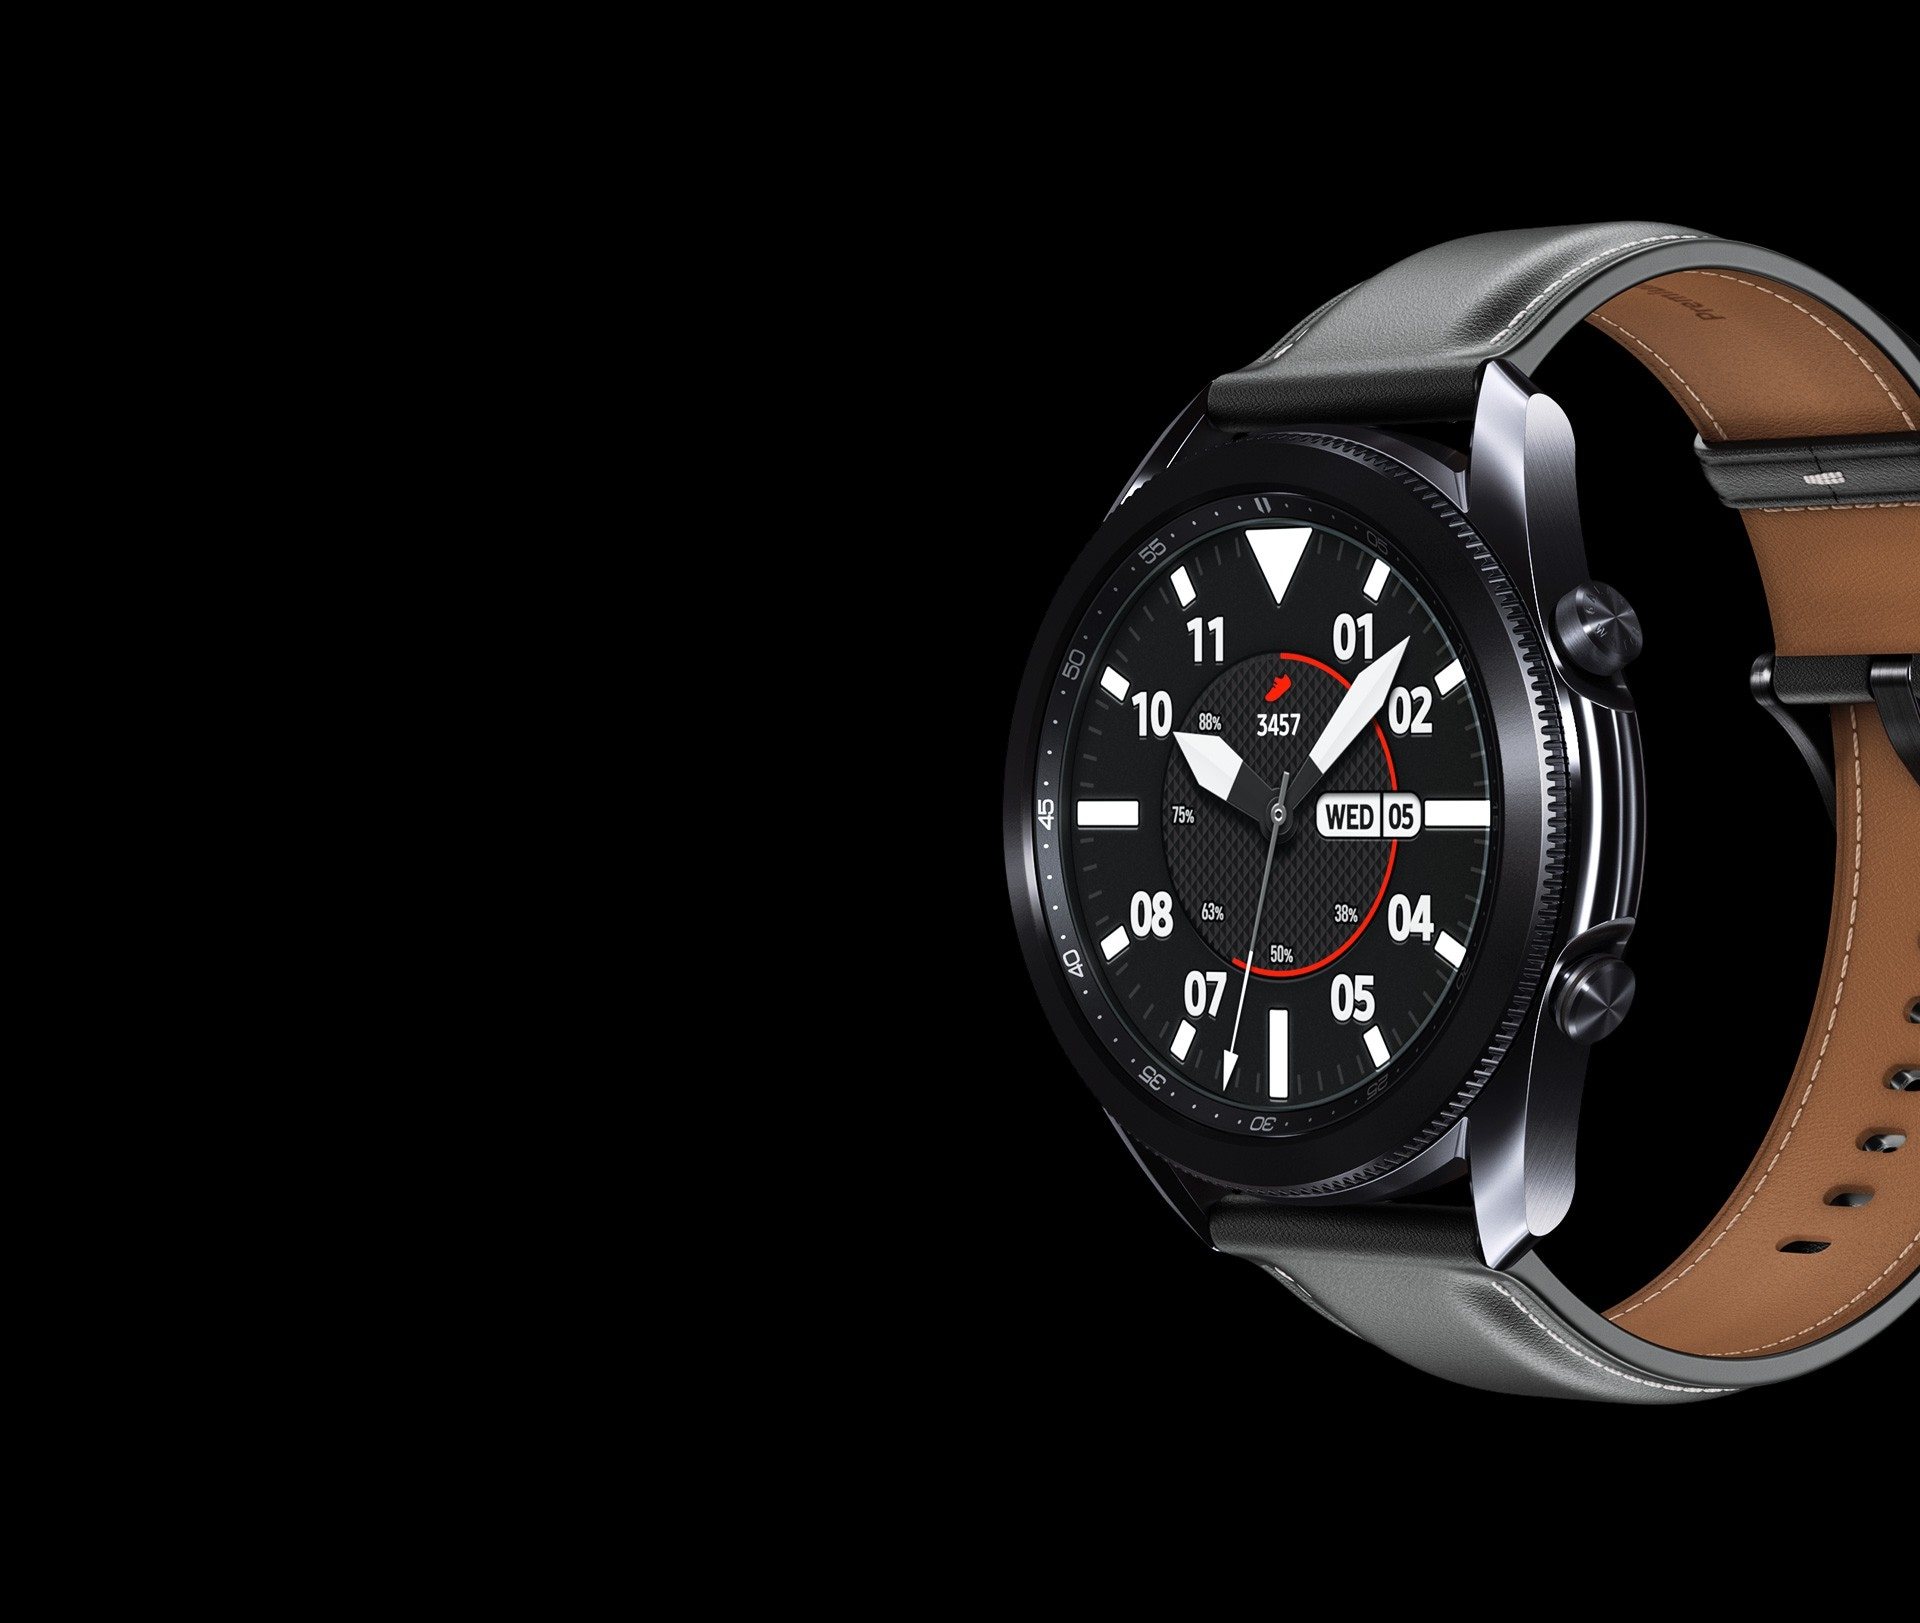 45mm Galaxy Watch3 in Mystic Black with a Sporty Classic Watch Face seen from an angle